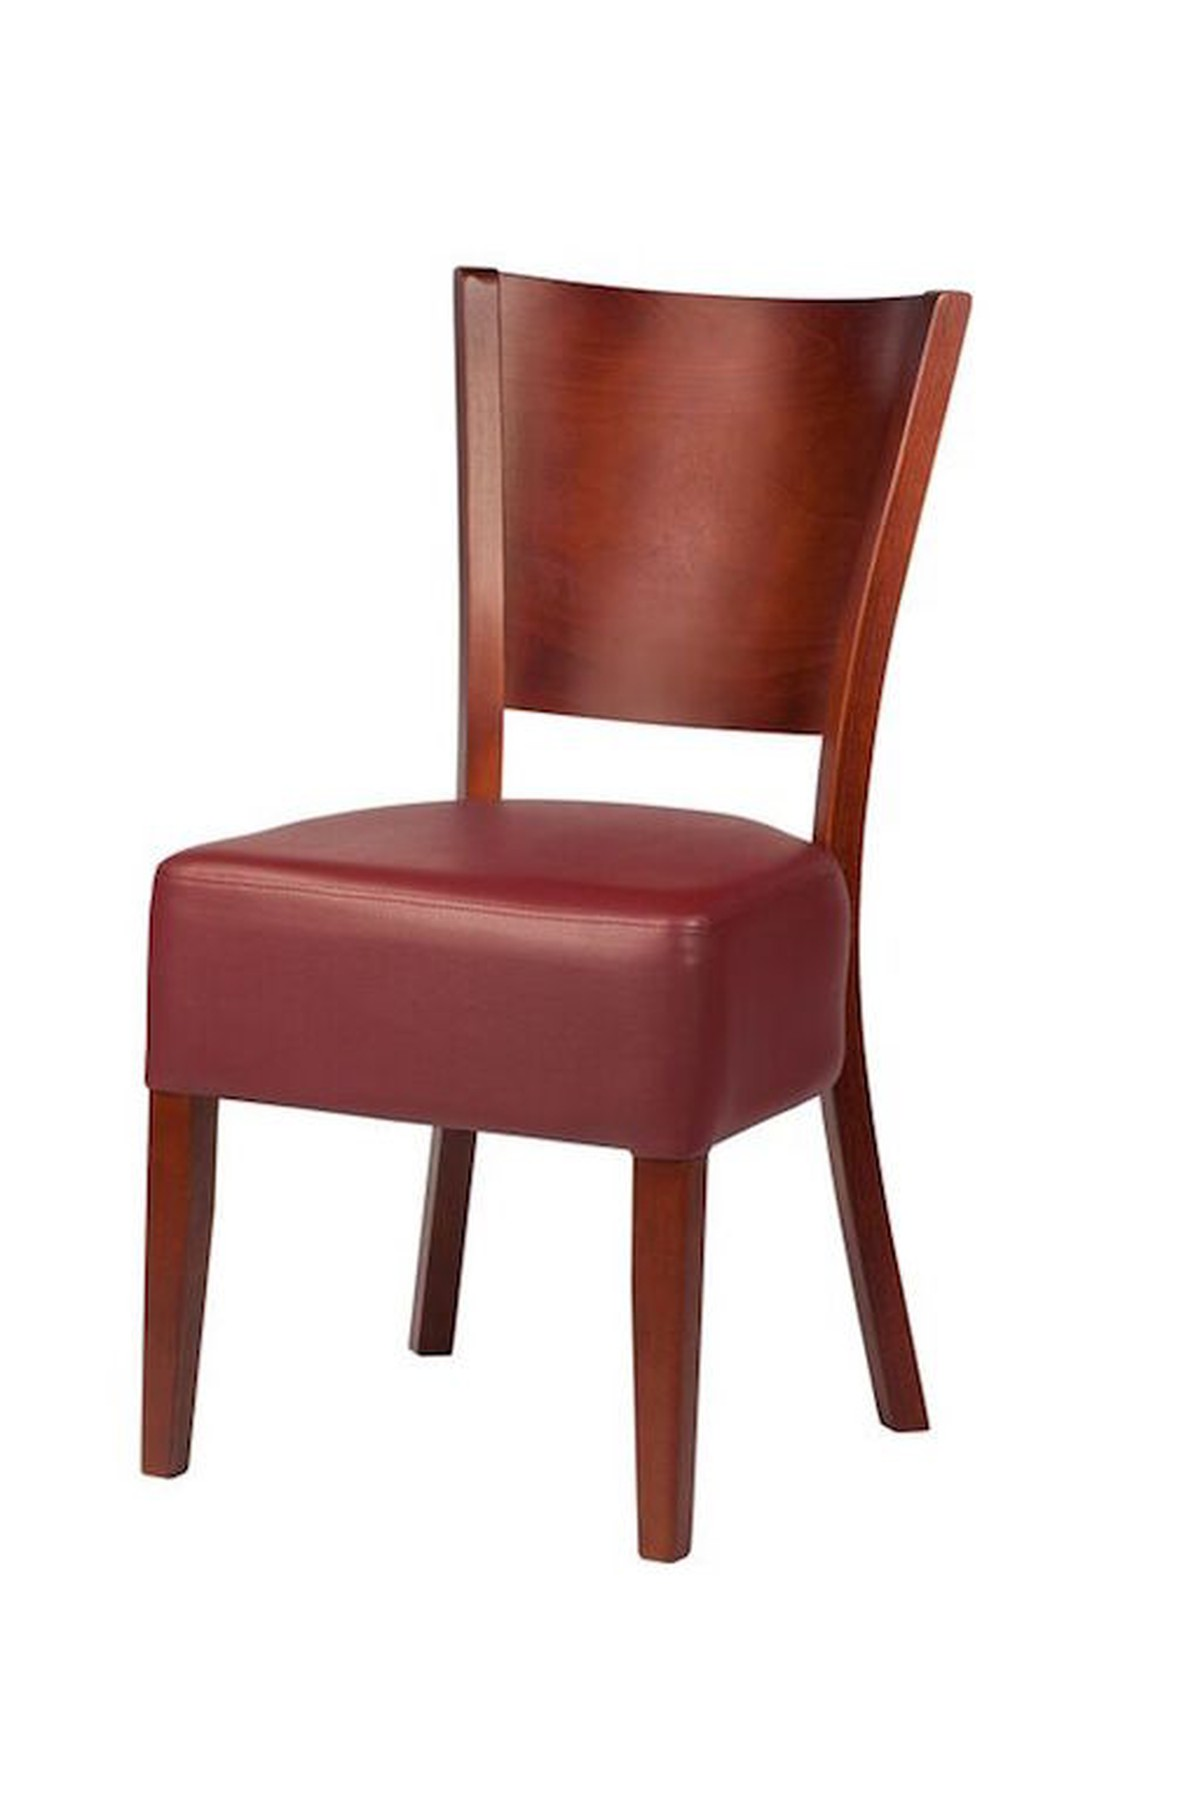 Secondhand hotel furniture dining chairs 140x designer for Faux leather dining chairs